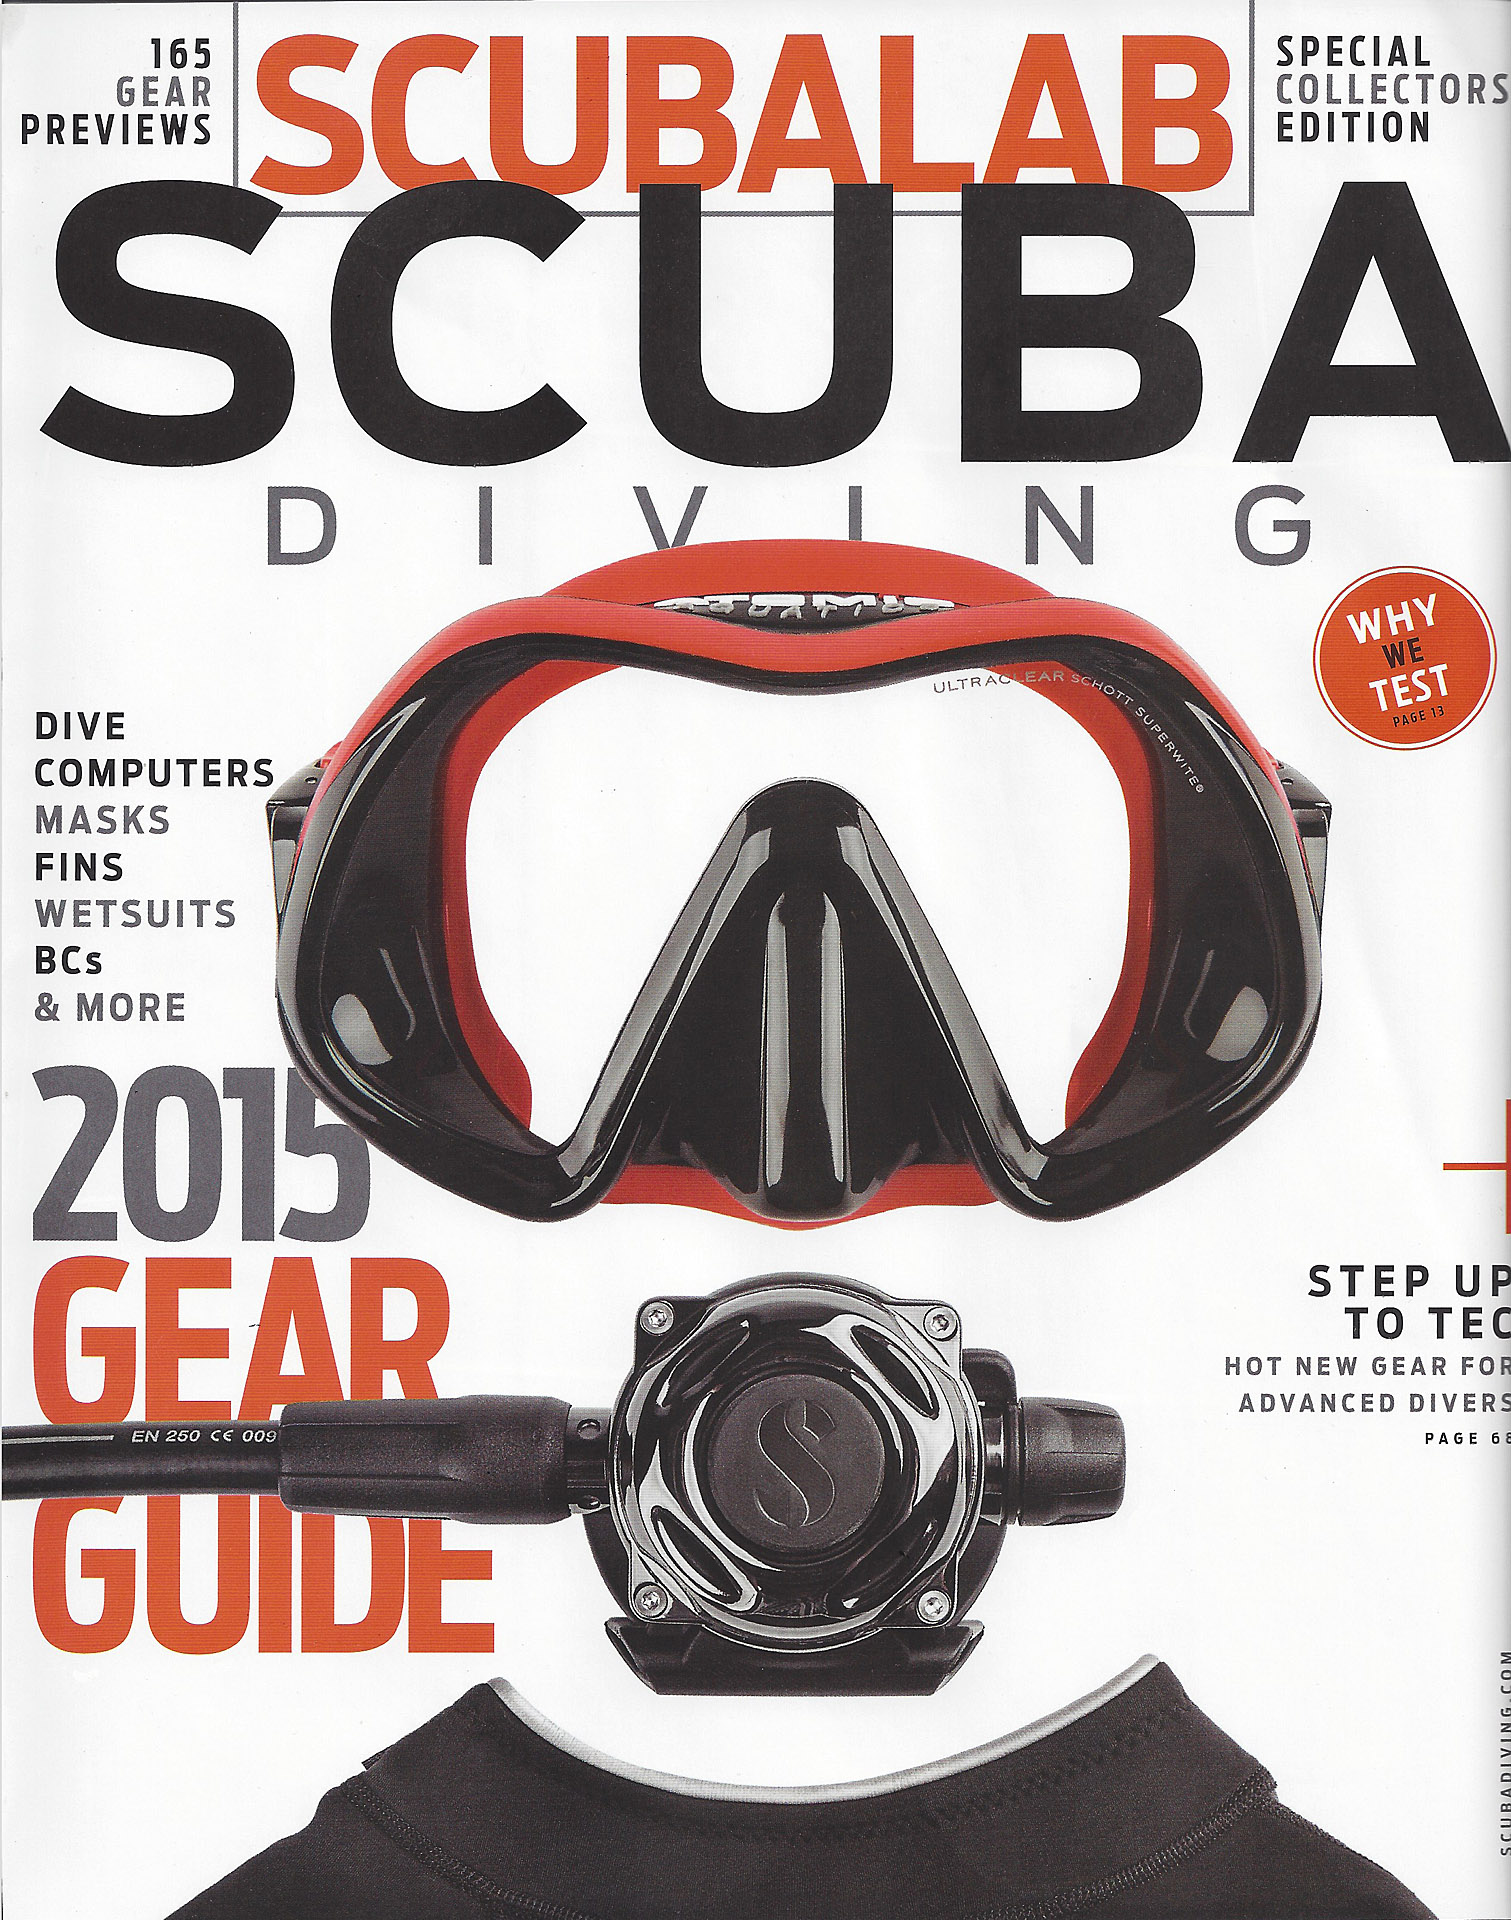 Scubalab Scuba Diving Magazine Spread